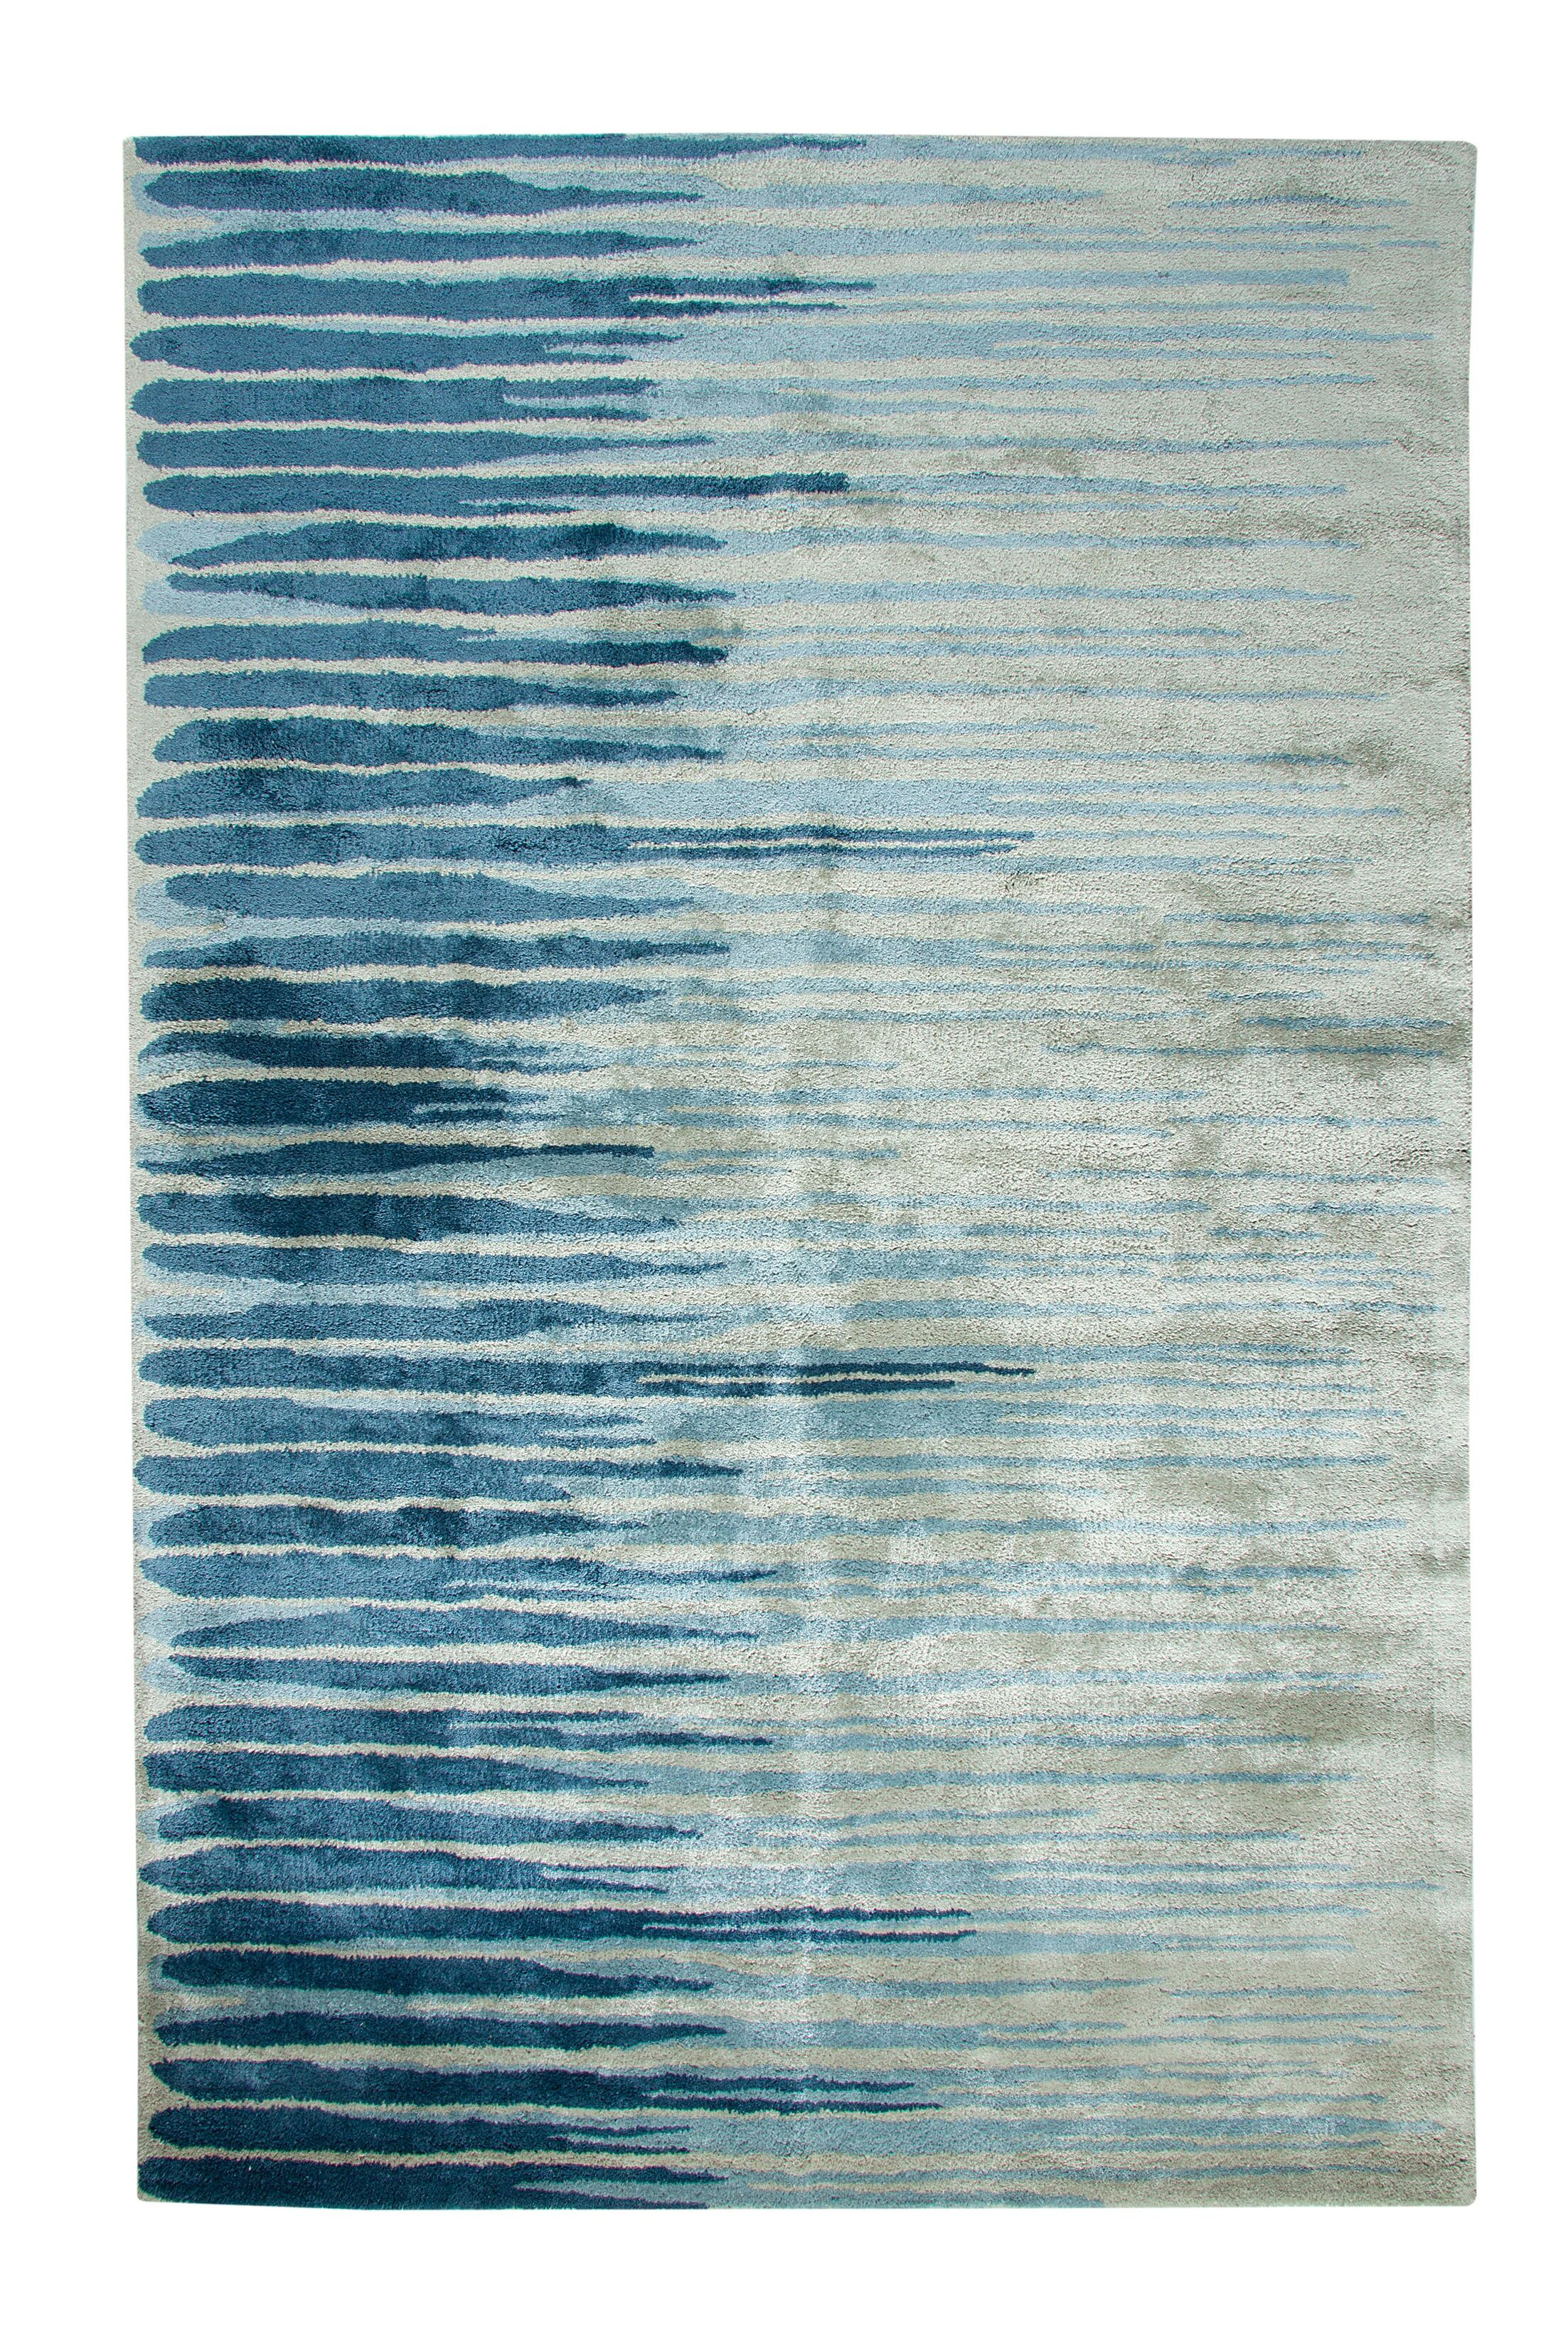 Vogue Hand-Woven Wool Blue/Gray Area Rug Rug Size: Rectangle 5' x 8'